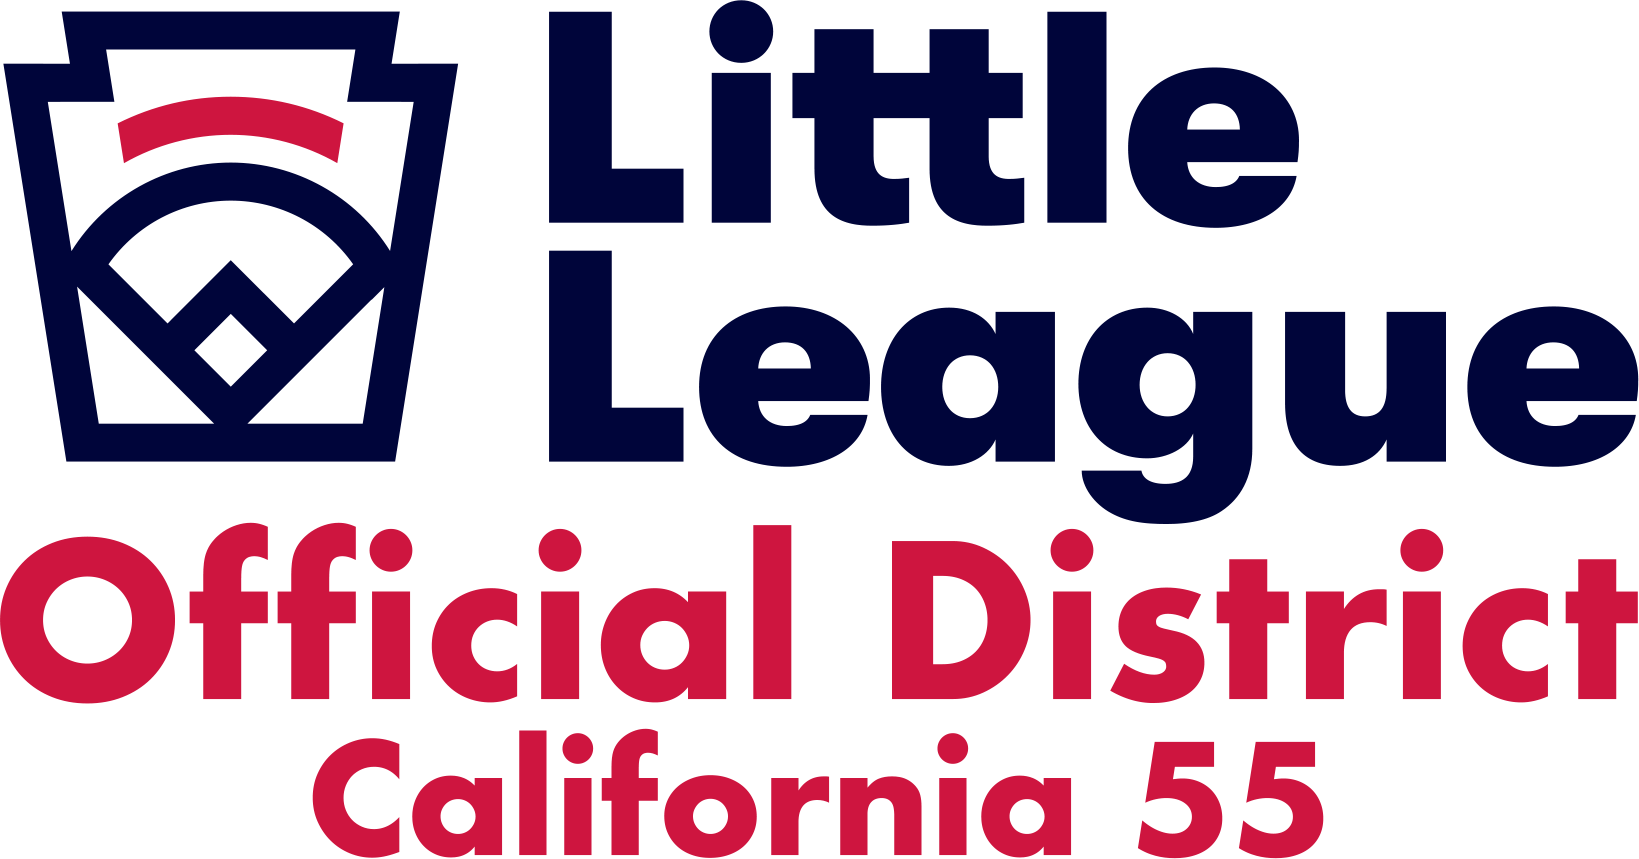 Little League Official District California 55